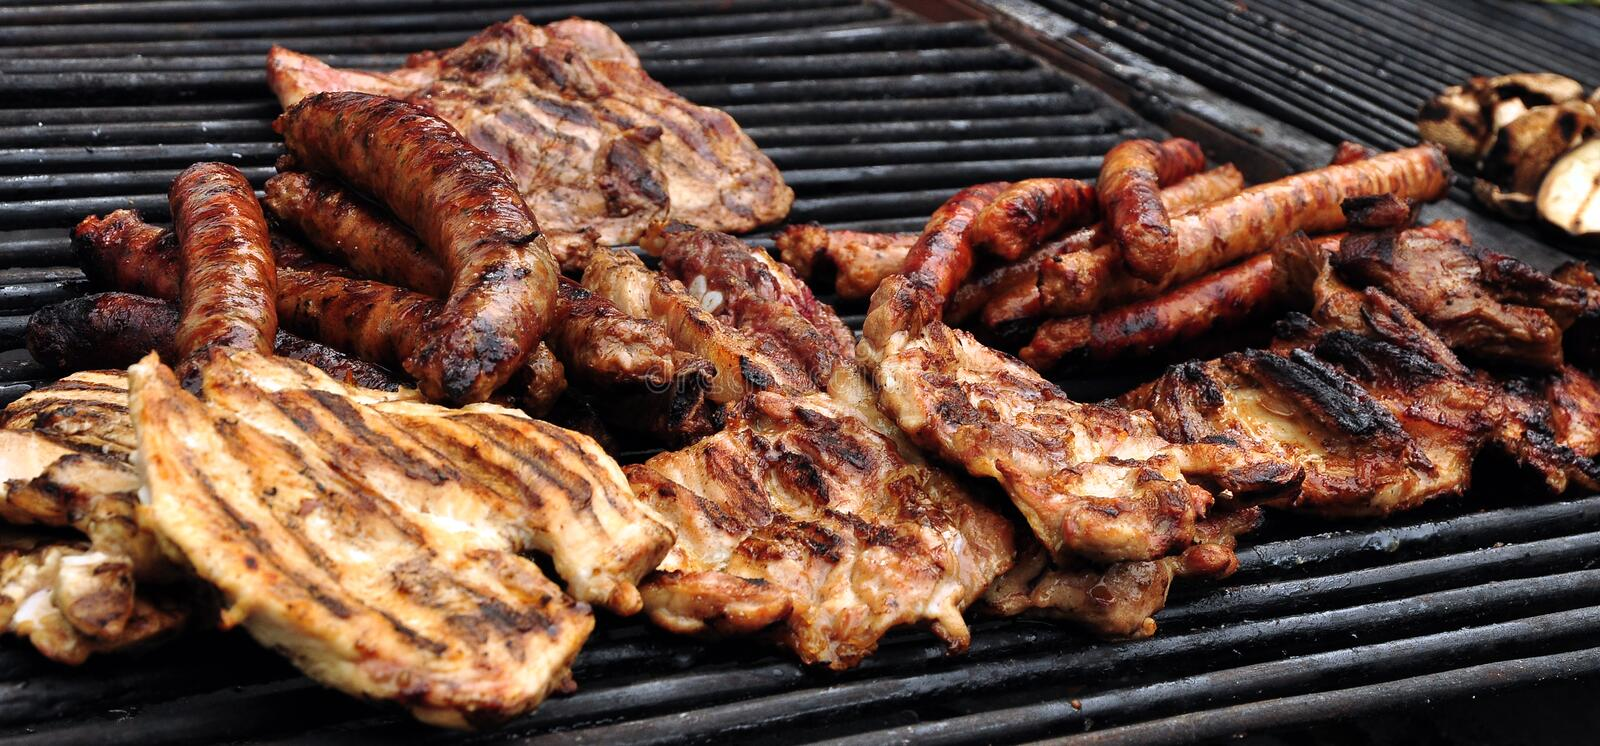 Grilled Steaks Stock Images